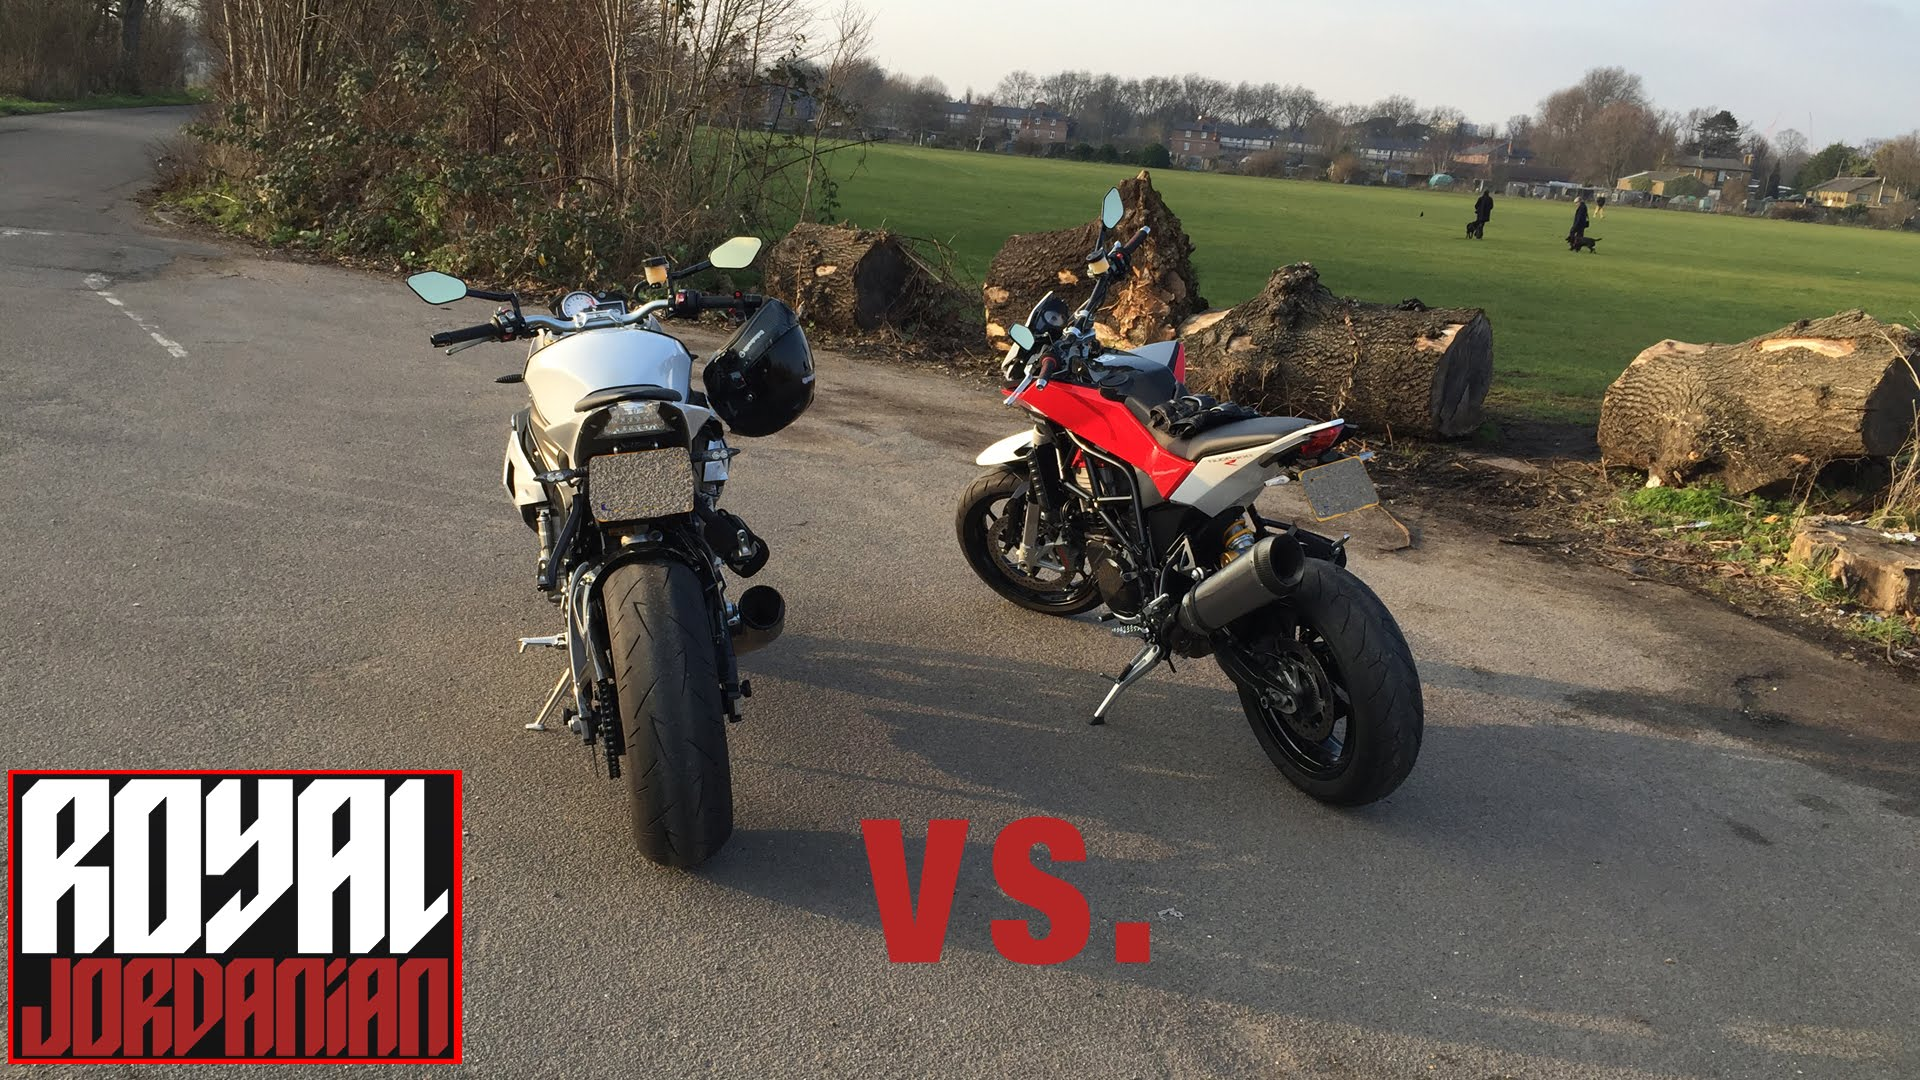 Husqvarna Nuda 900R vs. BMW S1000Rs - Rev Battle